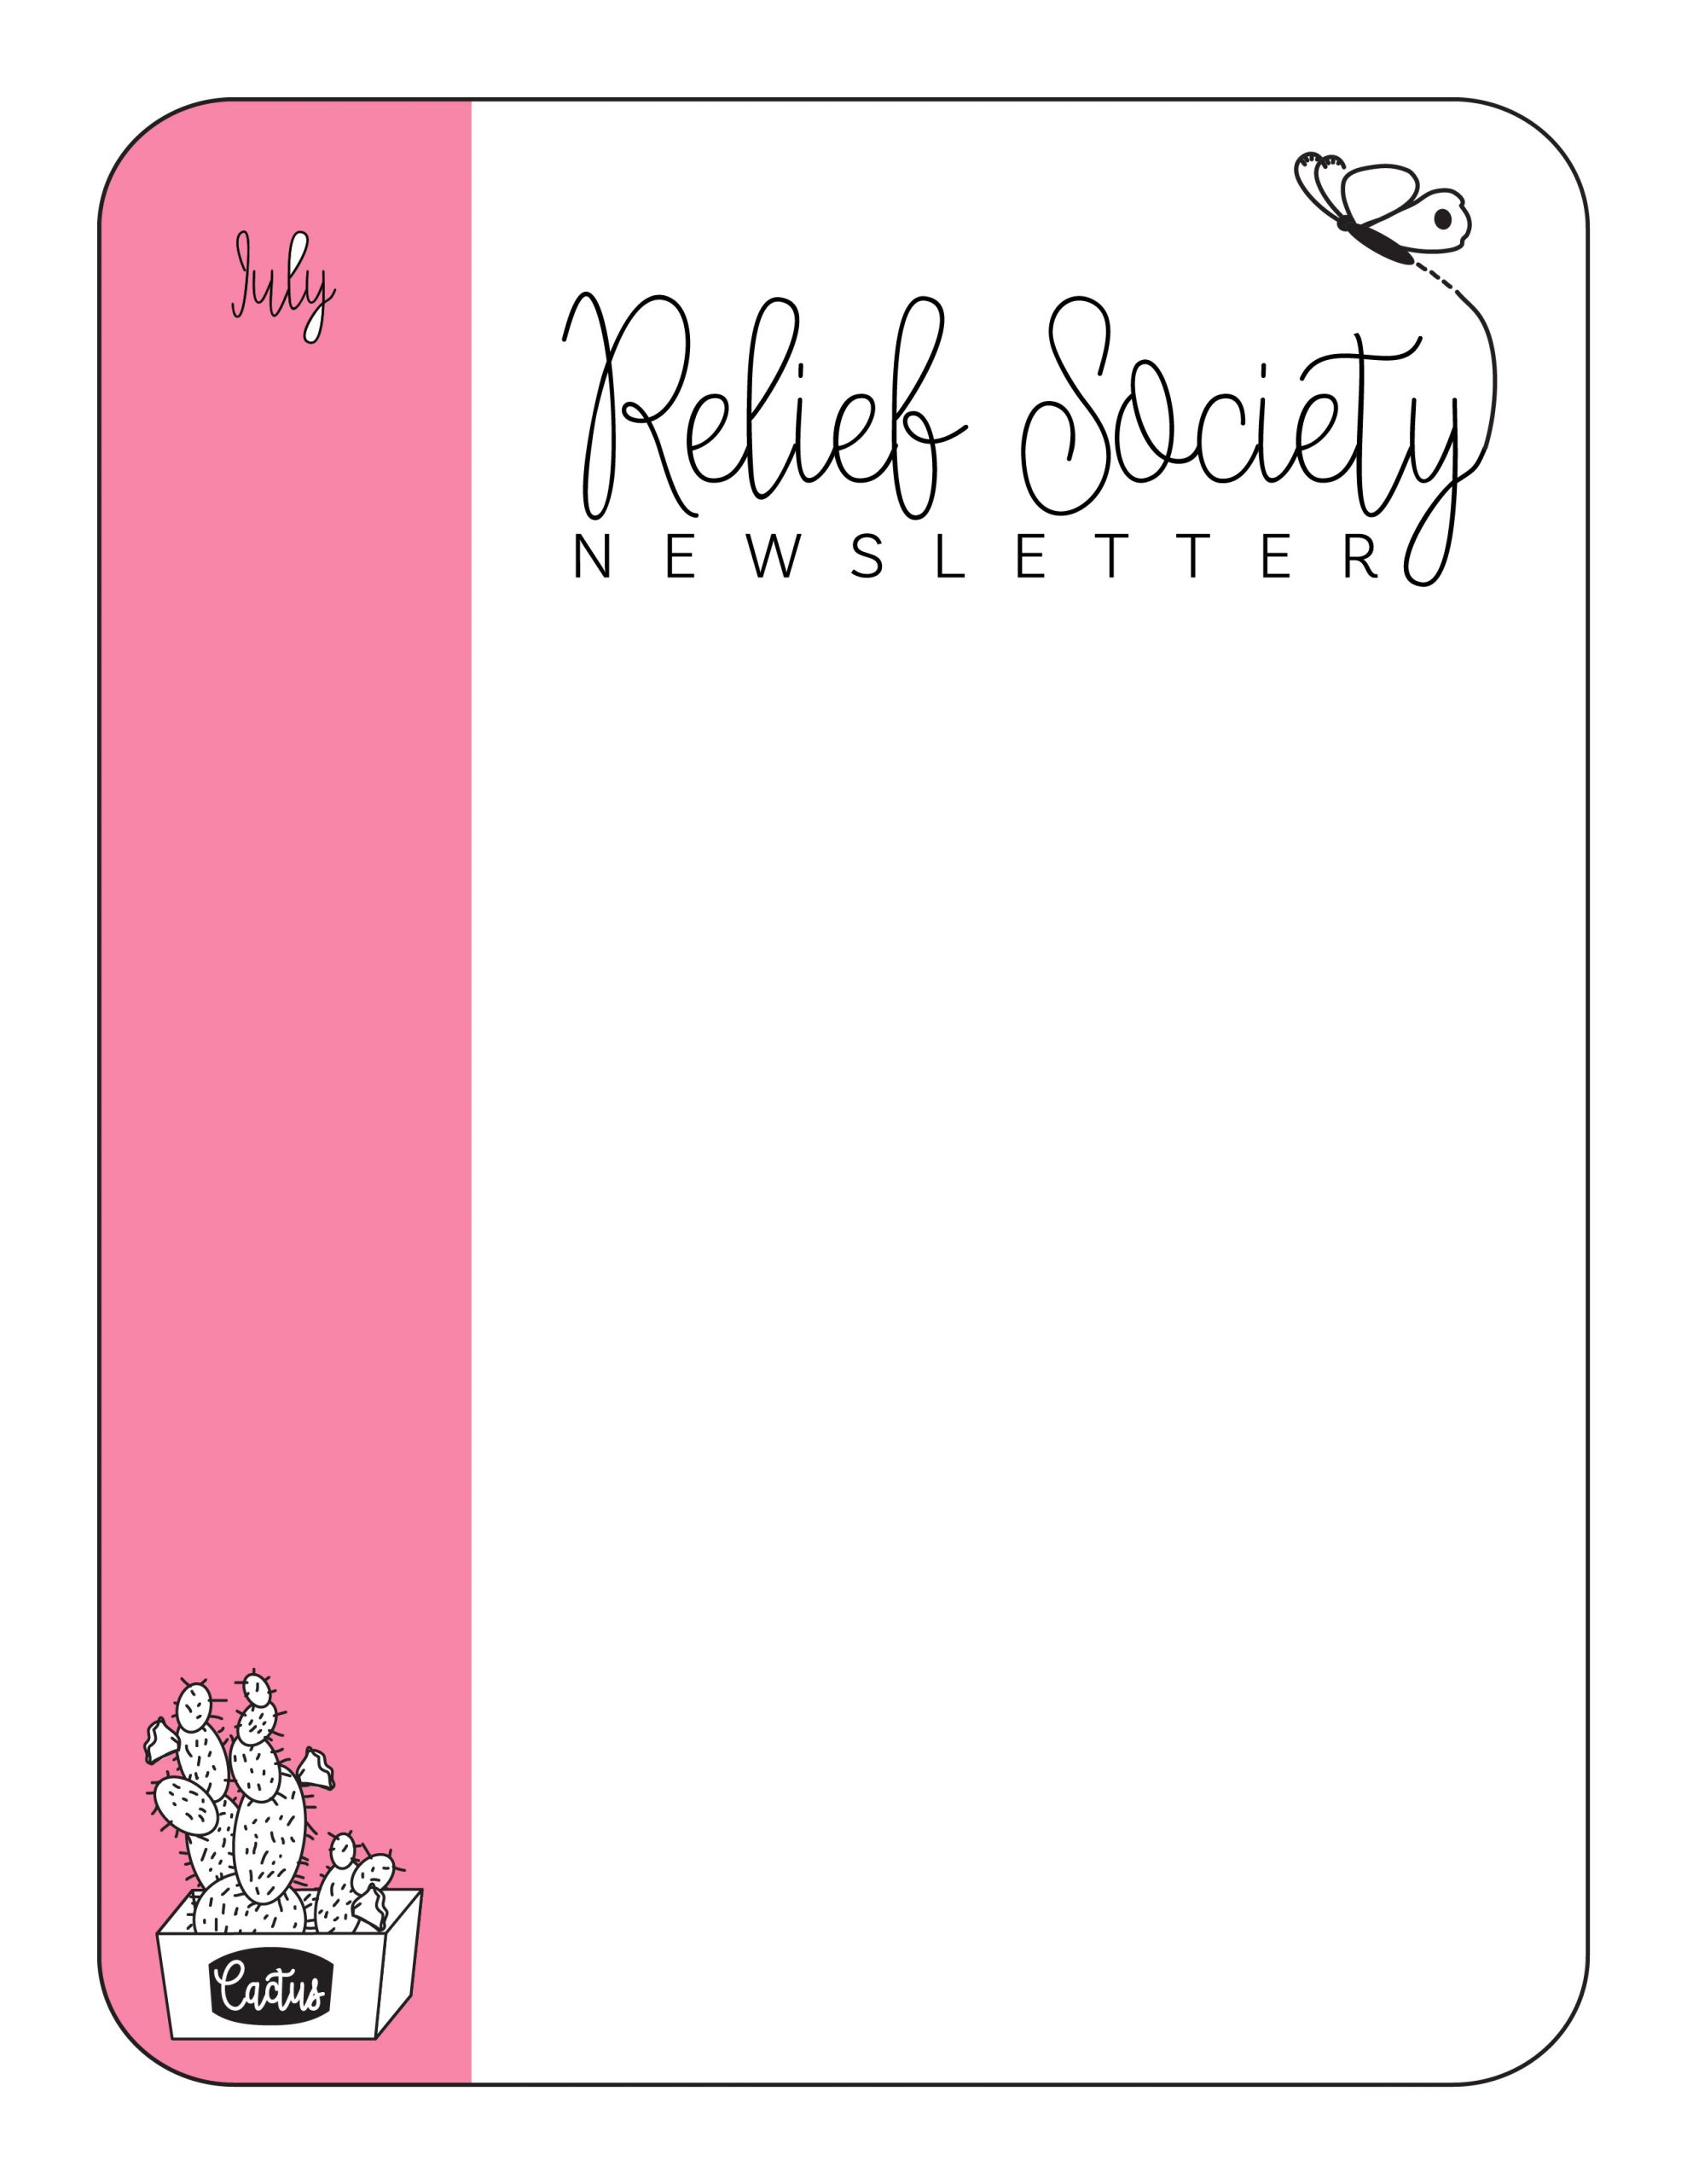 Relief society Newsletter Template